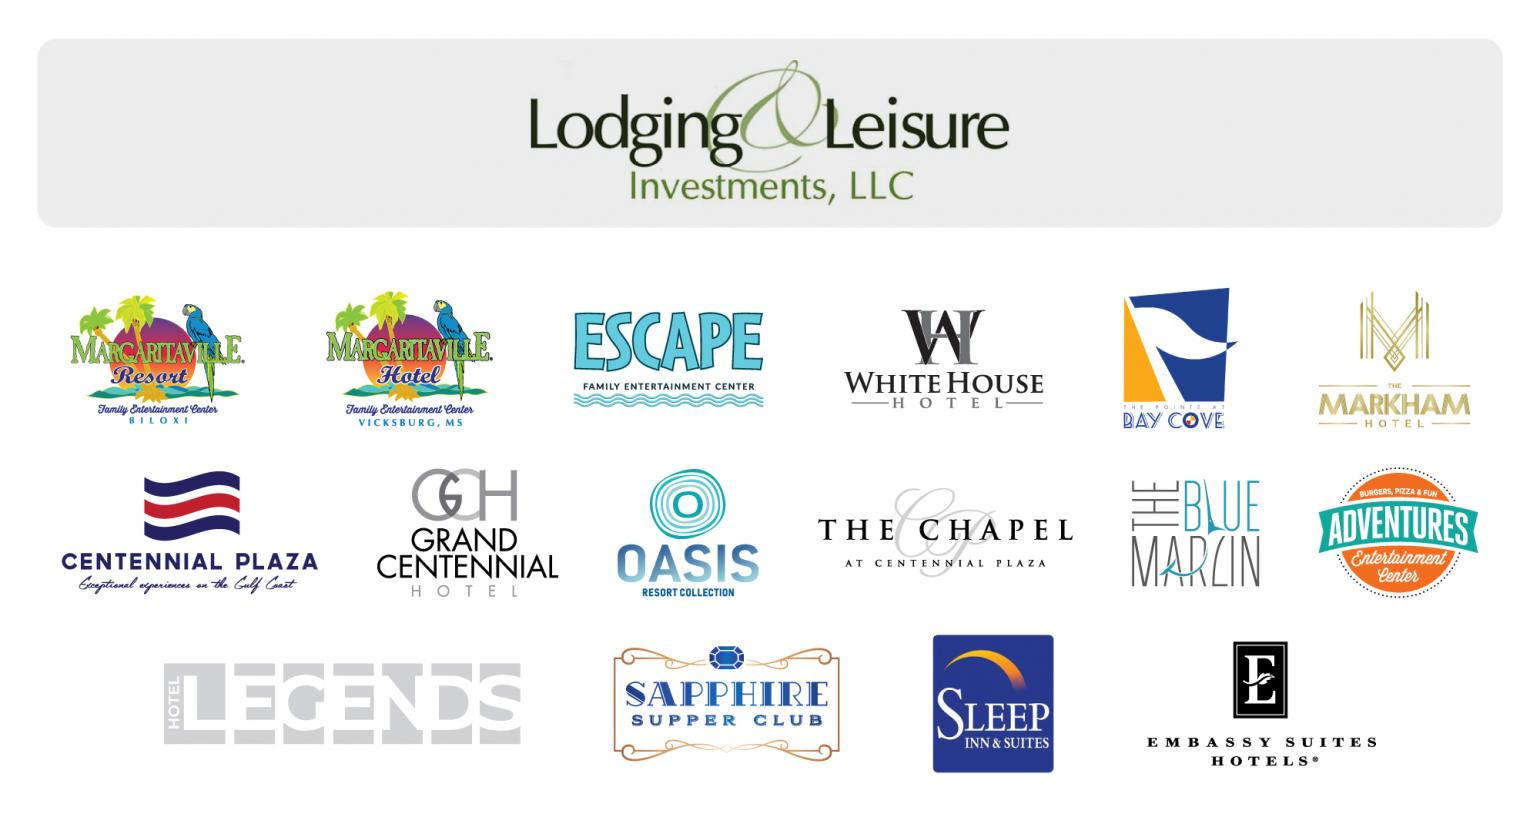 Lodging & Leisure Investments Properties